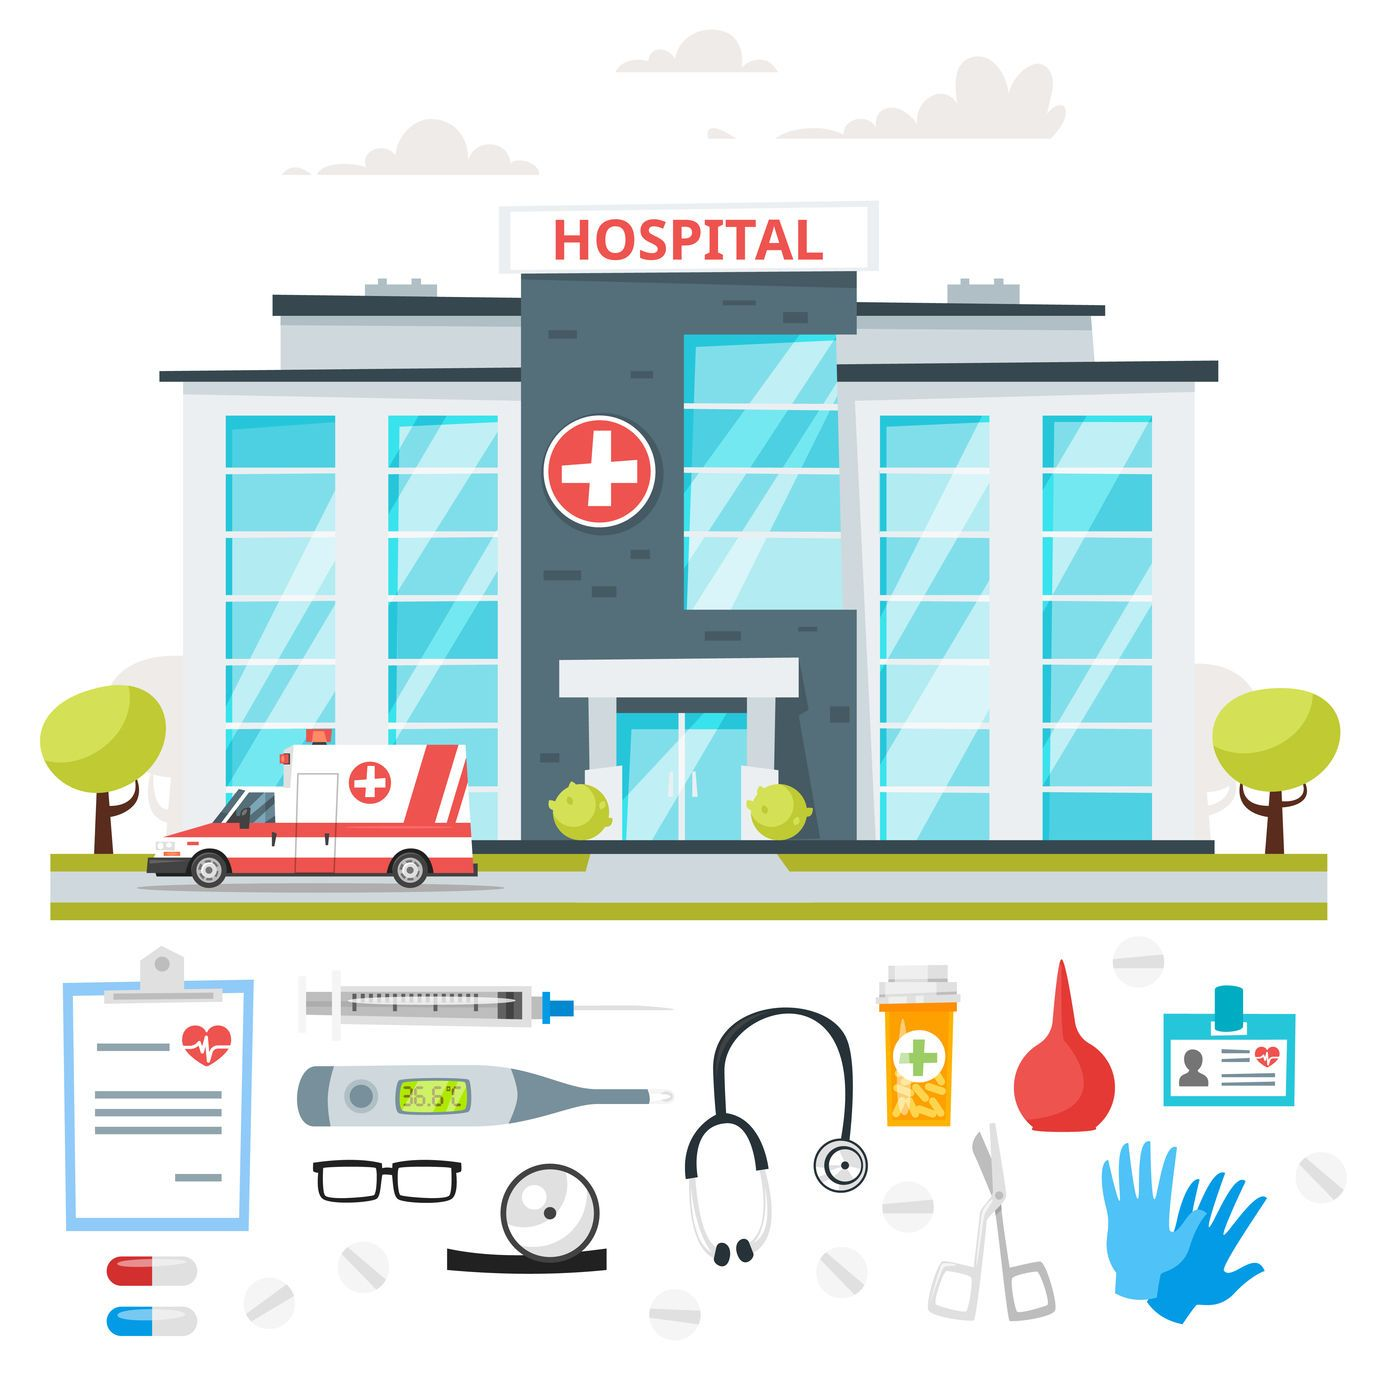 Hospital Building And Doctors By Cartoon Time